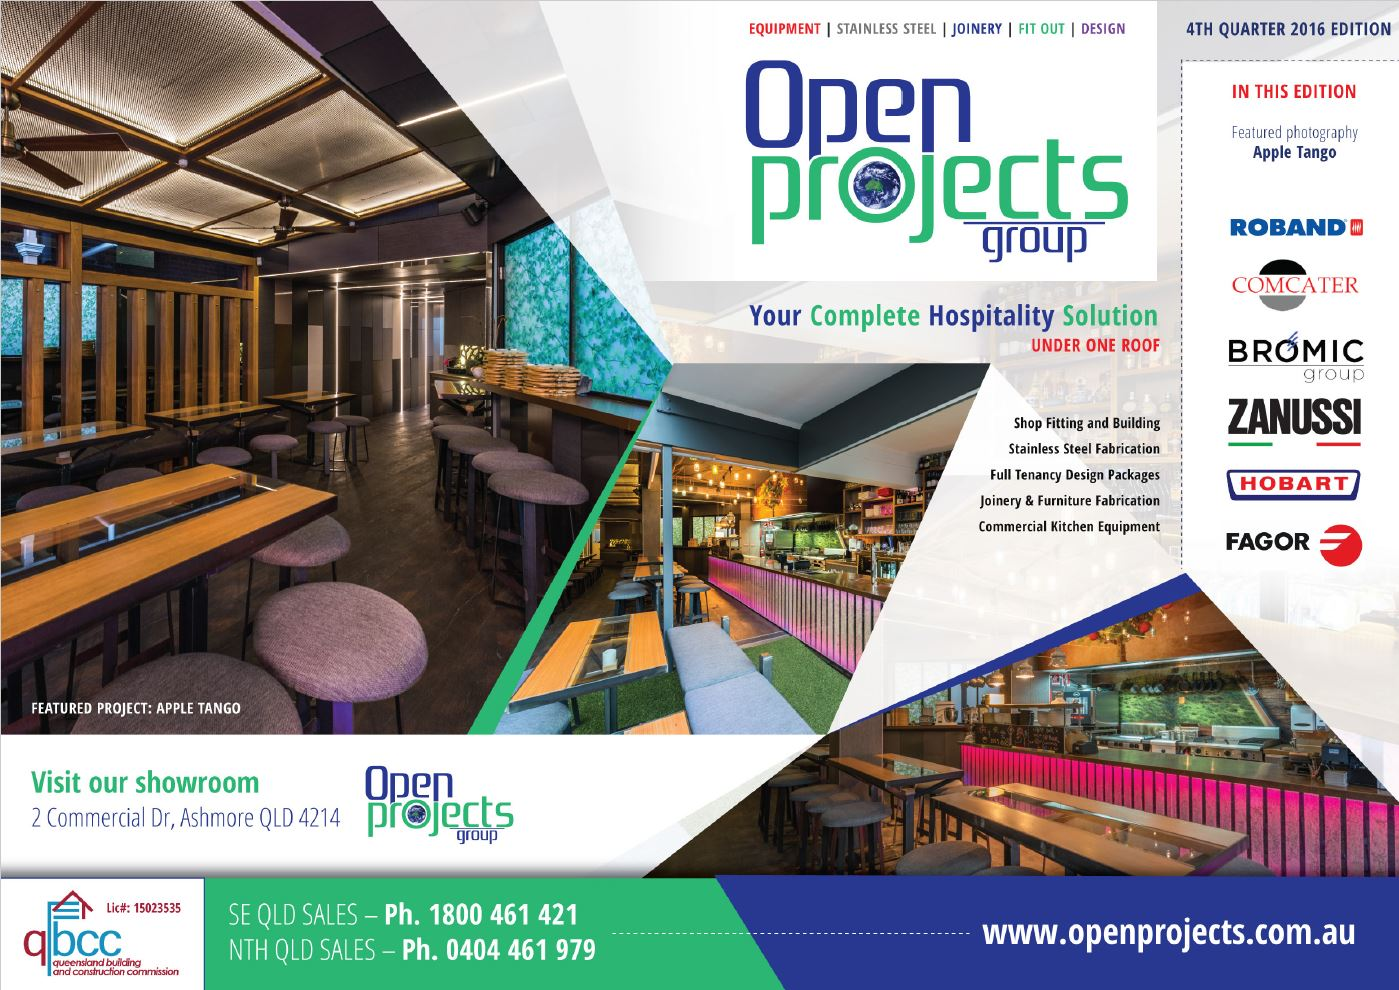 Commercial Kitchen Equipment Product ~ Th quarter specials brochure catering equipment open